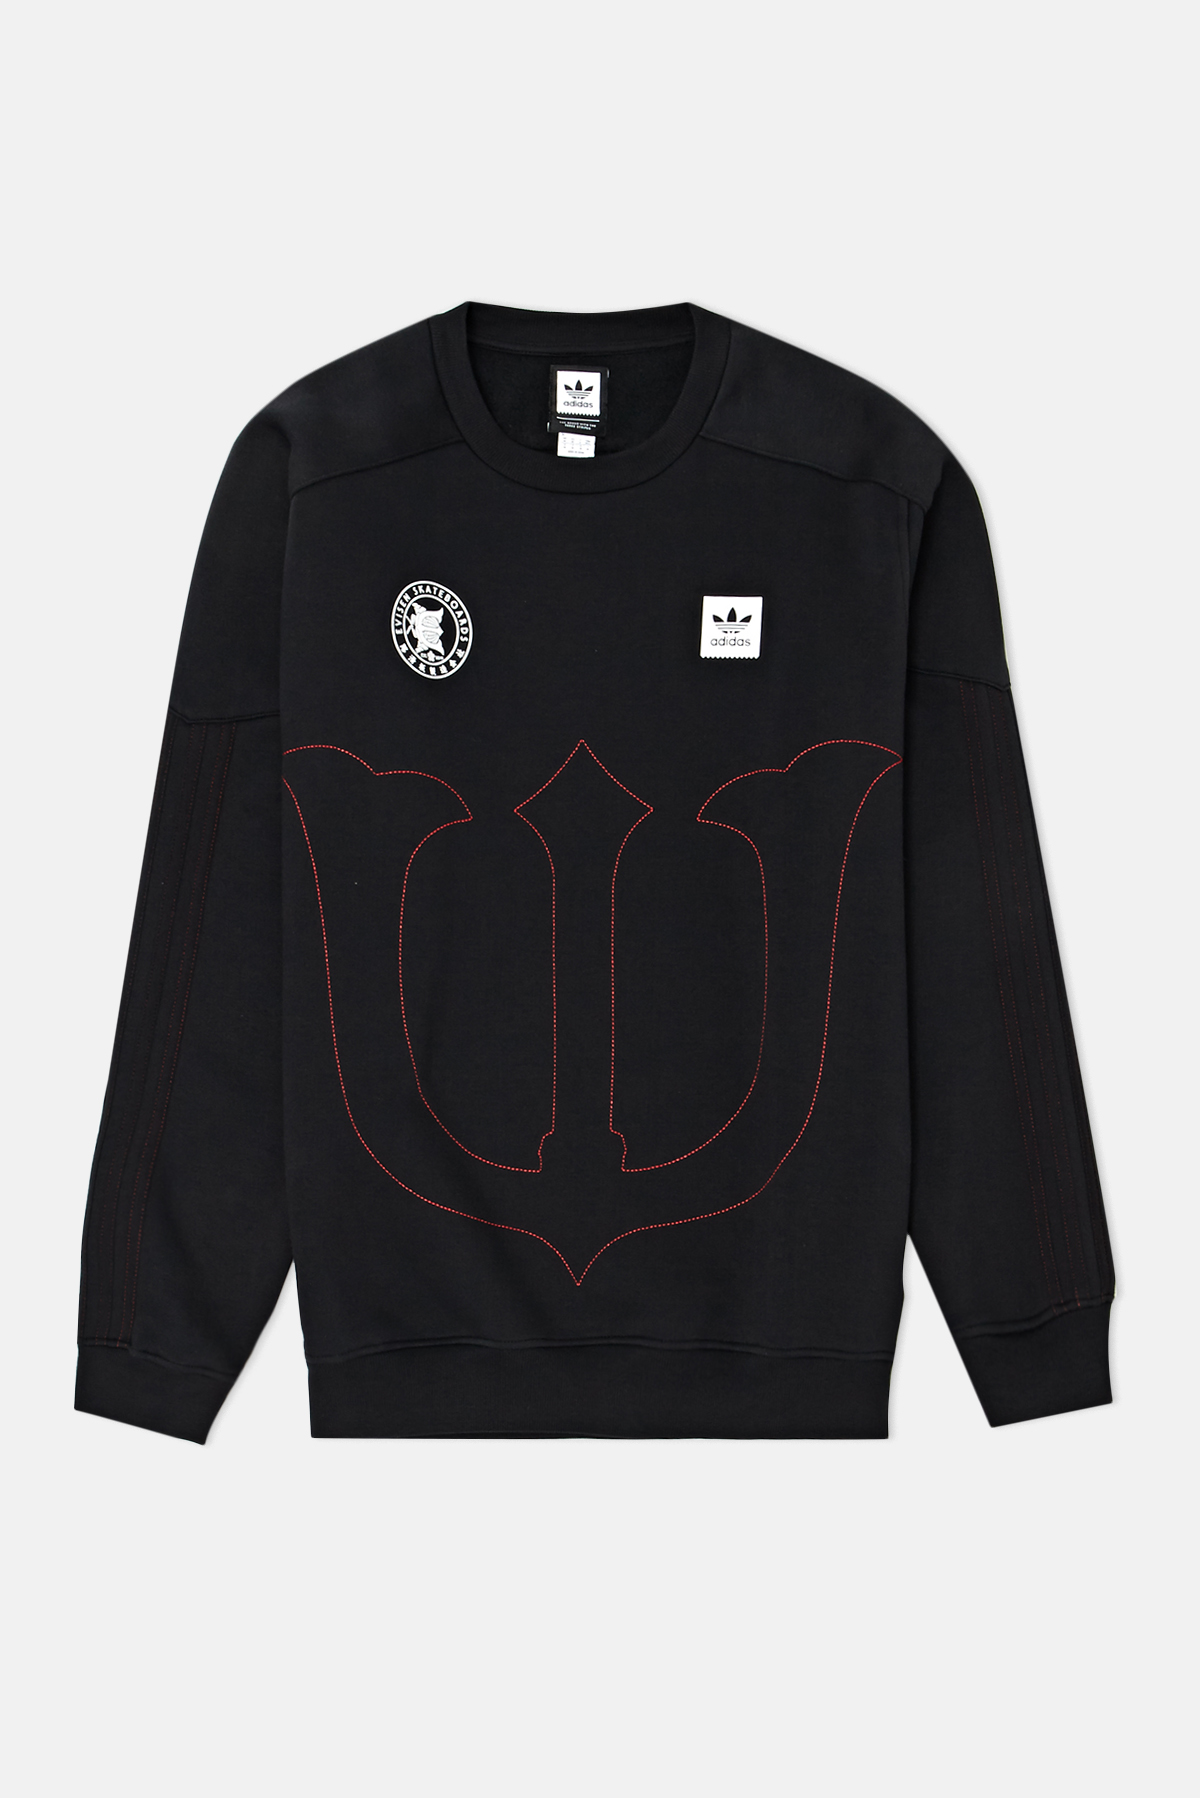 Adidas Evicrewn Sweatshirt available from Priory